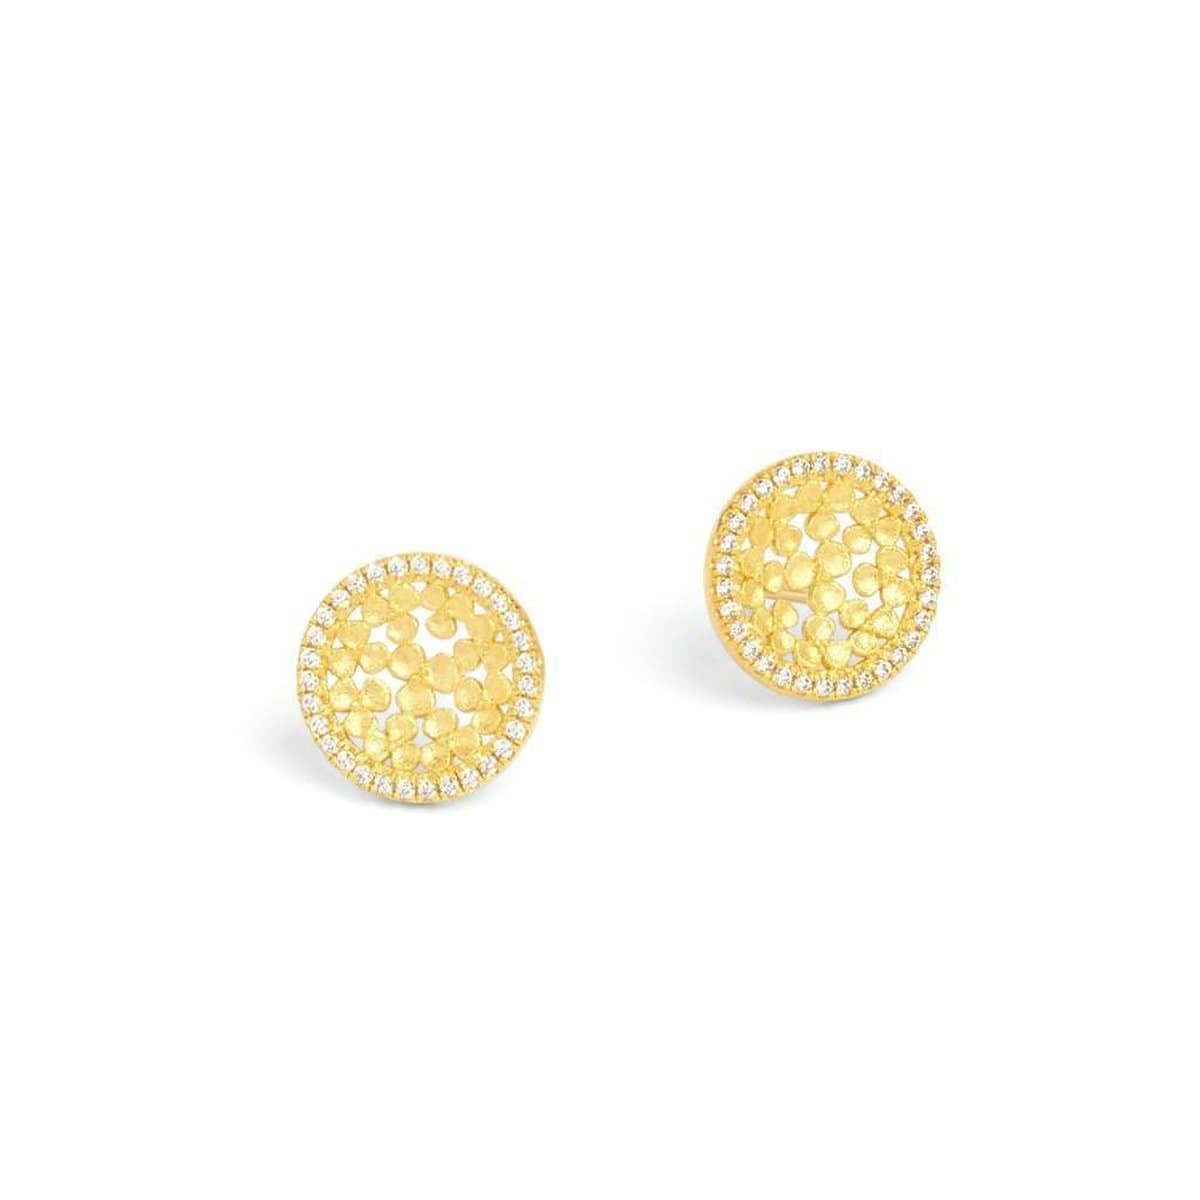 Leilini Zirconia Earrings - 19954156-Bernd Wolf-Renee Taylor Gallery